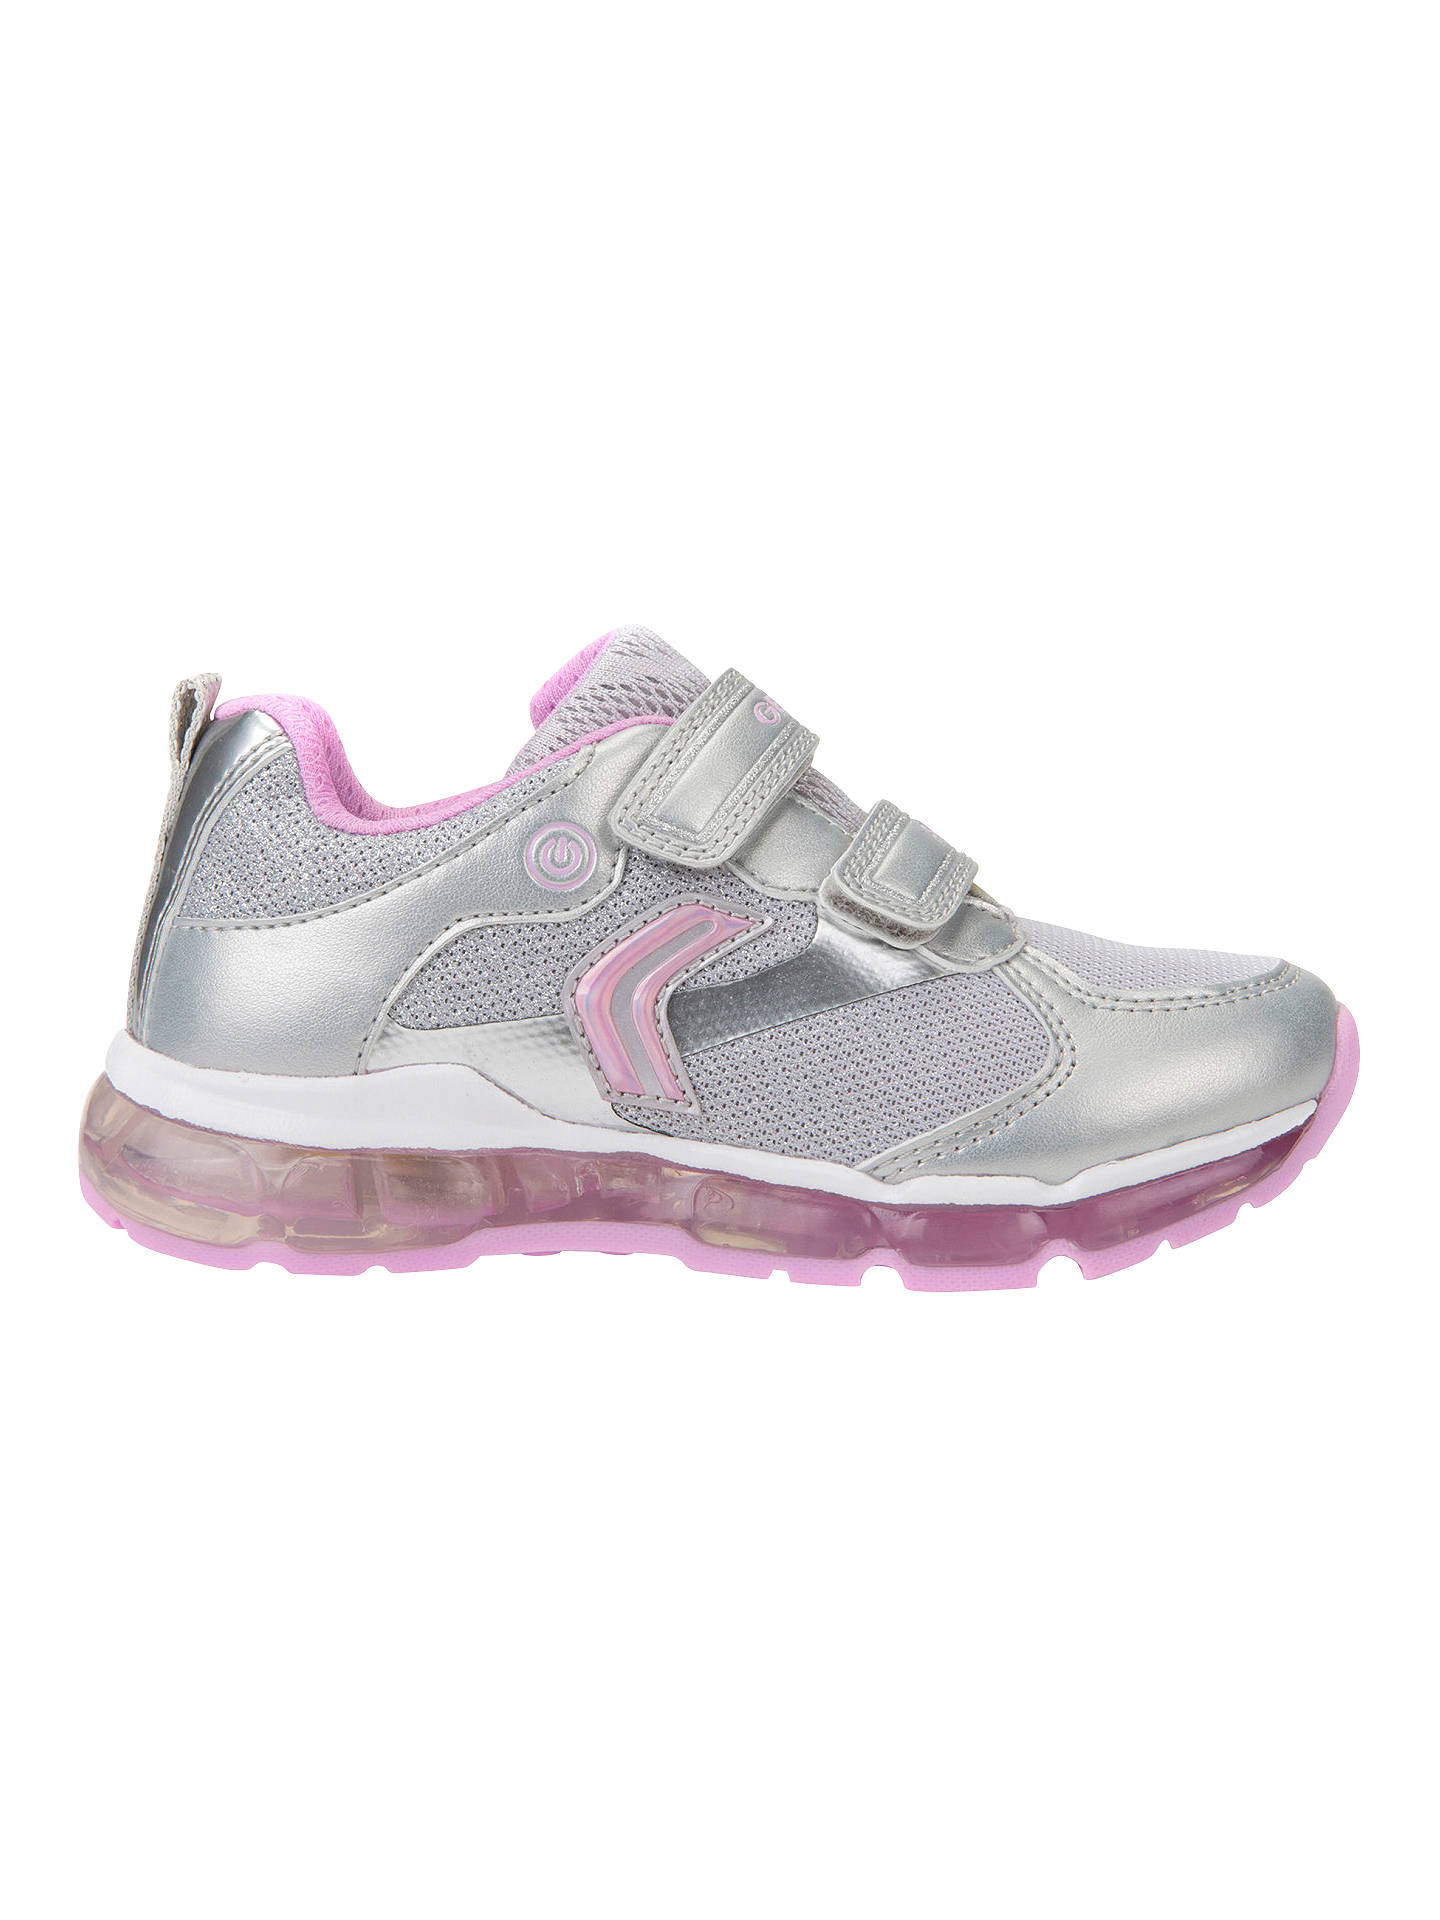 666597992558 Buy Geox Children's J Android G Trainers, Pink/Silver, 26 Online at  johnlewis ...